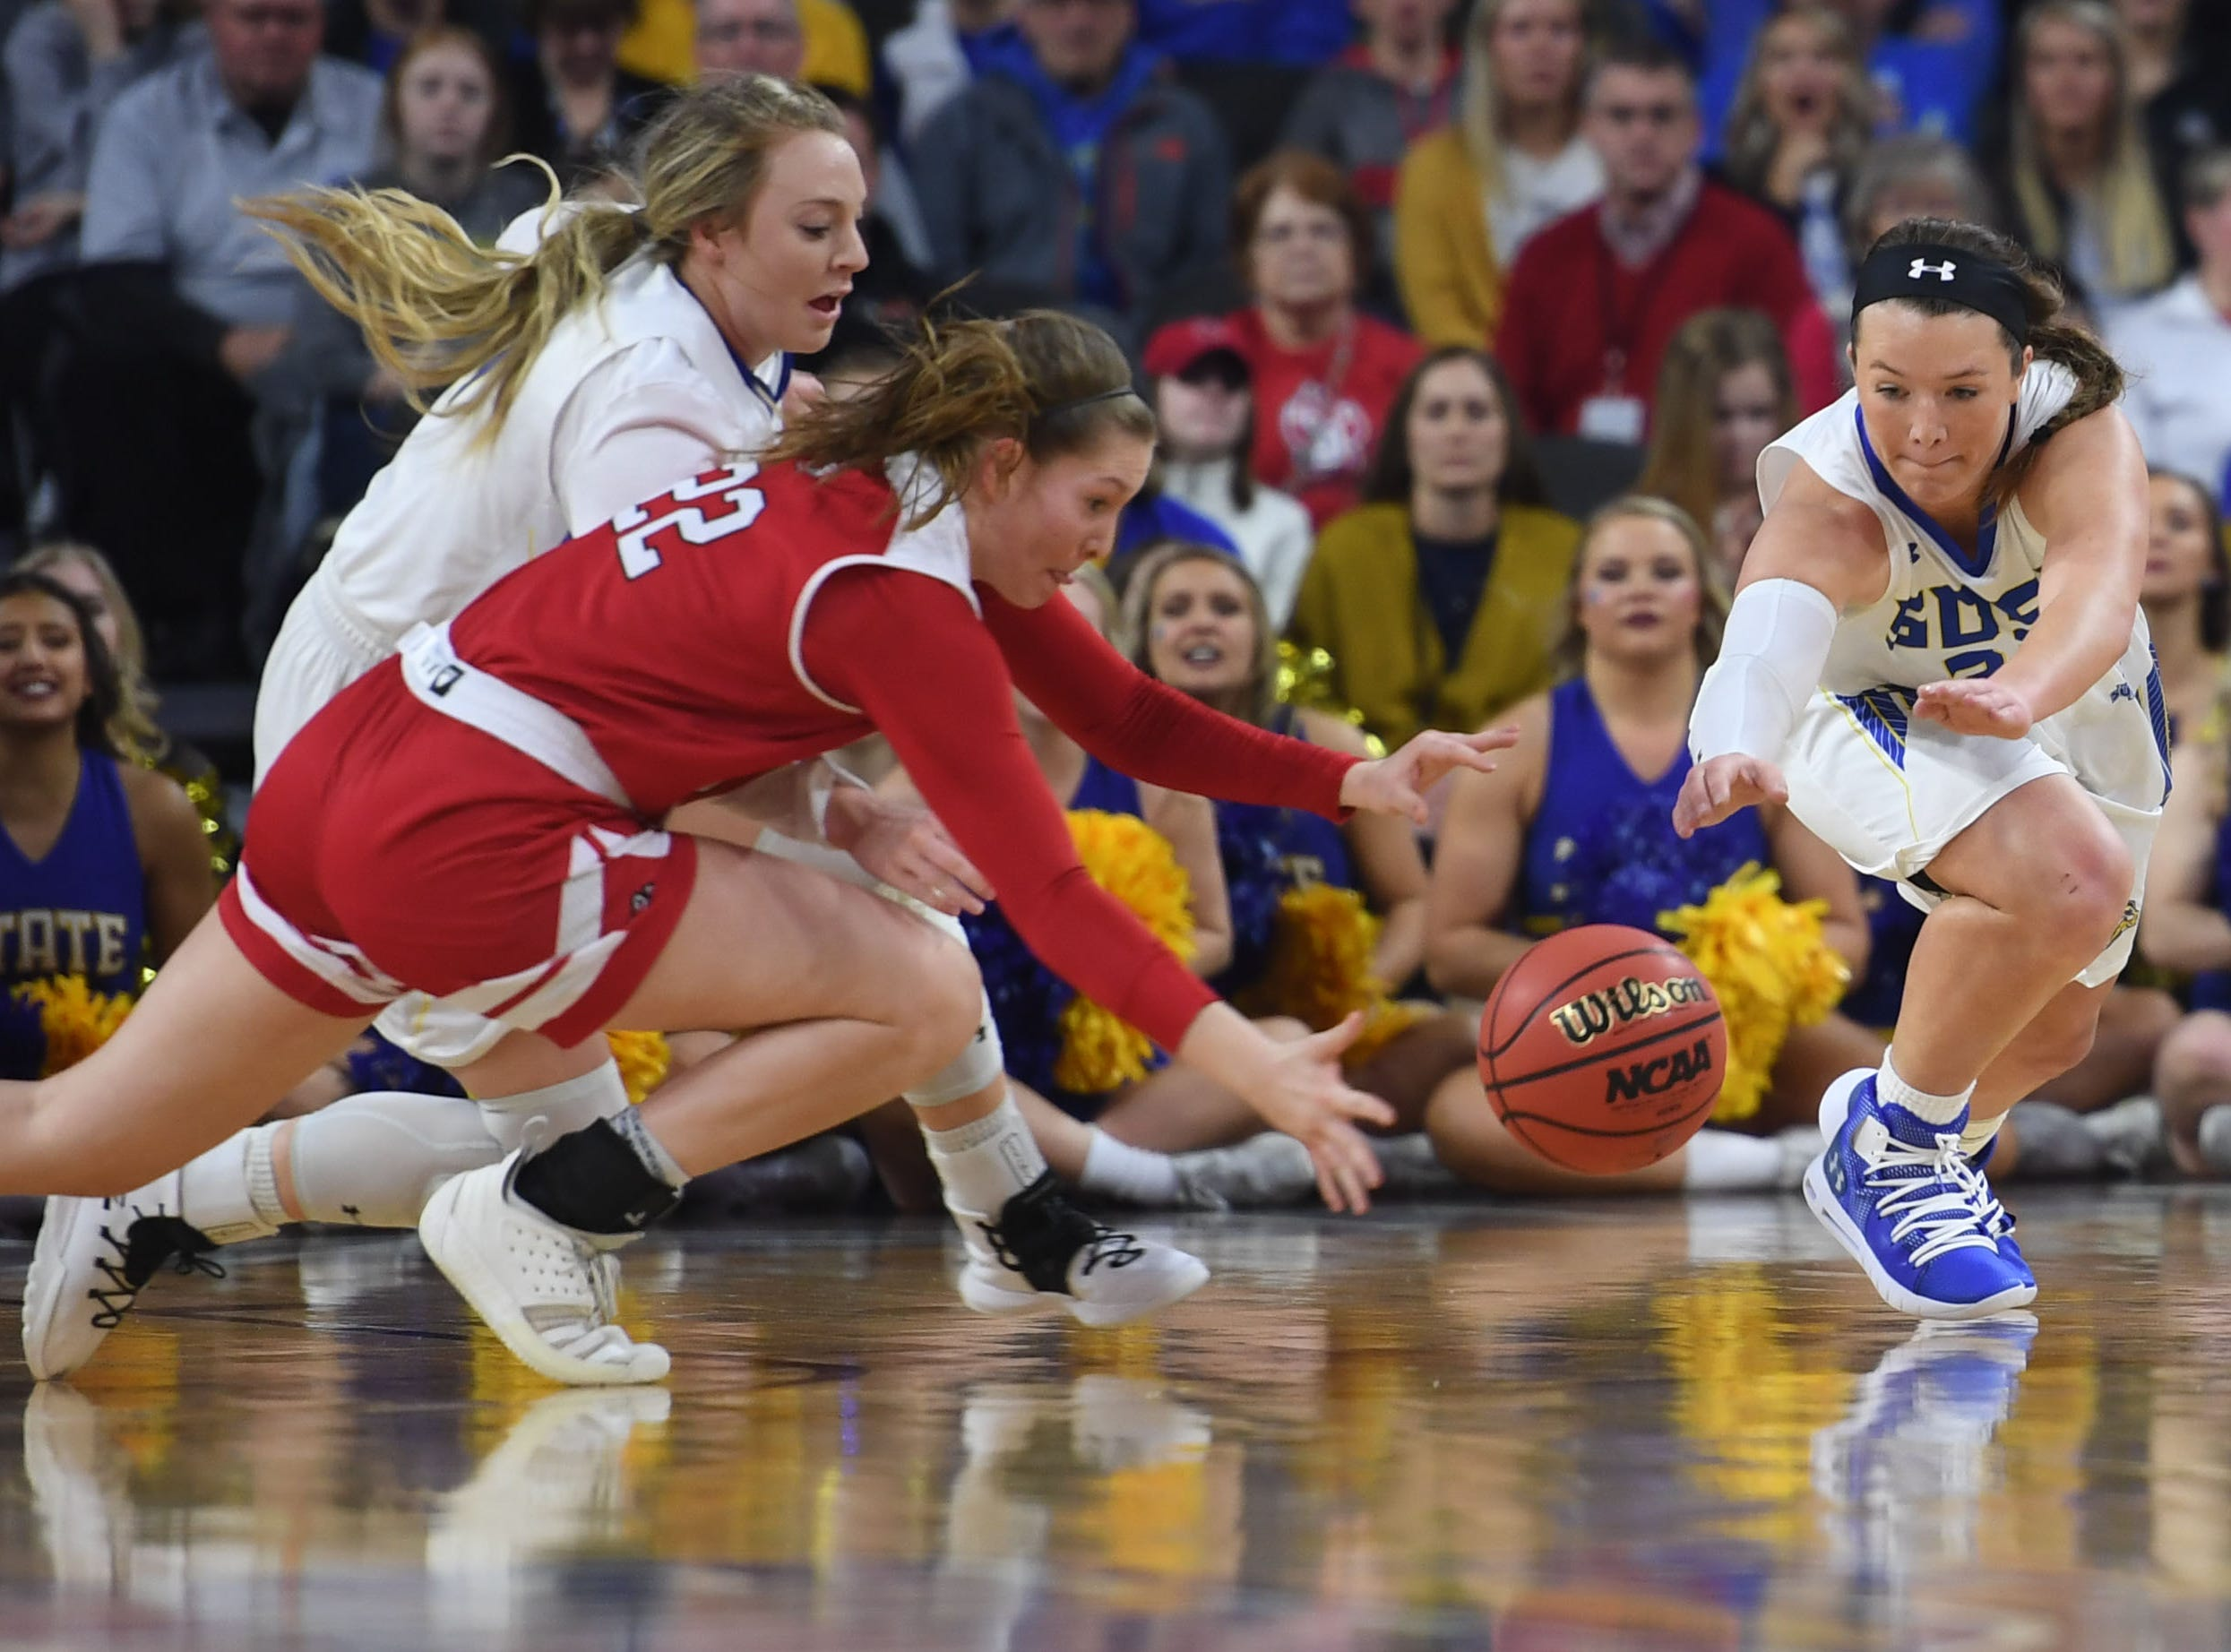 SDSU's Sydney Palmer and USD's Chloe Lamb attempt to gain control of the ball during the game Tuesday, March 12, in the Summit League women's championship at the Denny Sanford Premier Center in Sioux Falls.